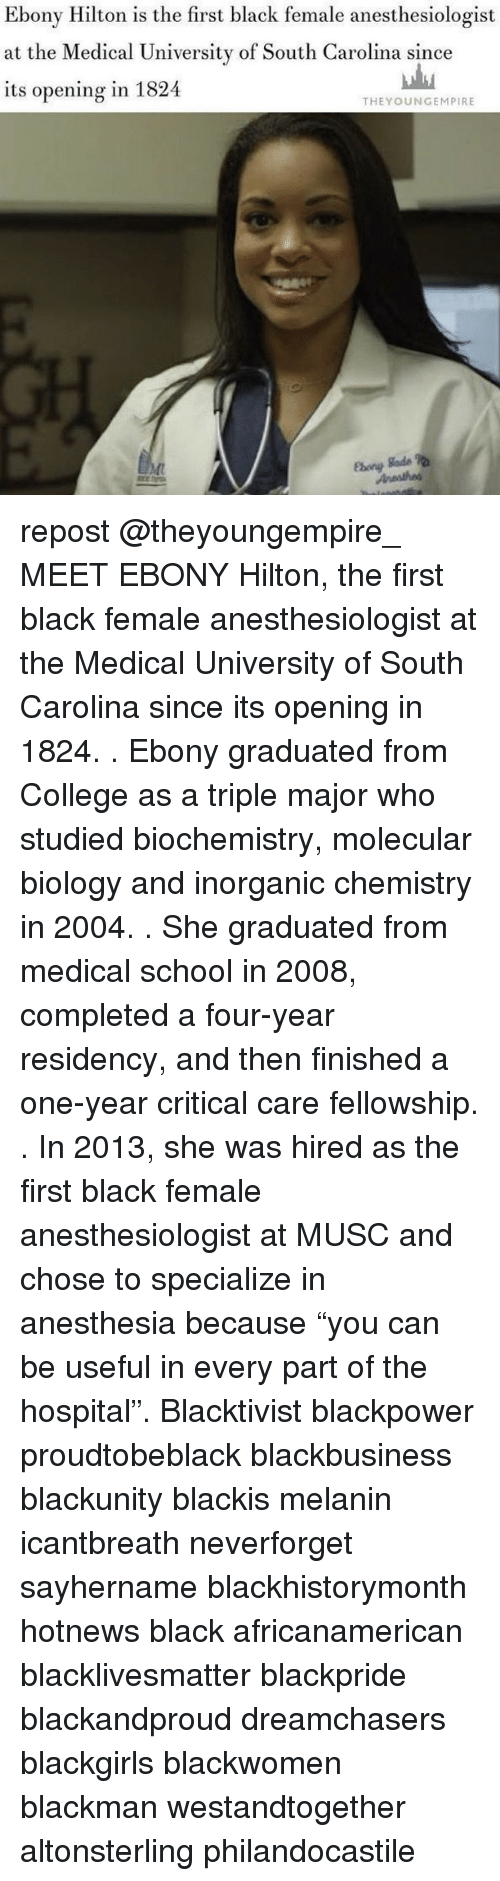 """anesthesia: Ebony Hilton is the first black female anesthesiologist  at the Medical University of South Carolina since  its opening in 1824  THEY OUNGEMPIRE repost @theyoungempire_ MEET EBONY Hilton, the first black female anesthesiologist at the Medical University of South Carolina since its opening in 1824. . Ebony graduated from College as a triple major who studied biochemistry, molecular biology and inorganic chemistry in 2004. . She graduated from medical school in 2008, completed a four-year residency, and then finished a one-year critical care fellowship. . In 2013, she was hired as the first black female anesthesiologist at MUSC and chose to specialize in anesthesia because """"you can be useful in every part of the hospital"""". Blacktivist blackpower proudtobeblack blackbusiness blackunity blackis melanin icantbreath neverforget sayhername blackhistorymonth hotnews black africanamerican blacklivesmatter blackpride blackandproud dreamchasers blackgirls blackwomen blackman westandtogether altonsterling philandocastile"""